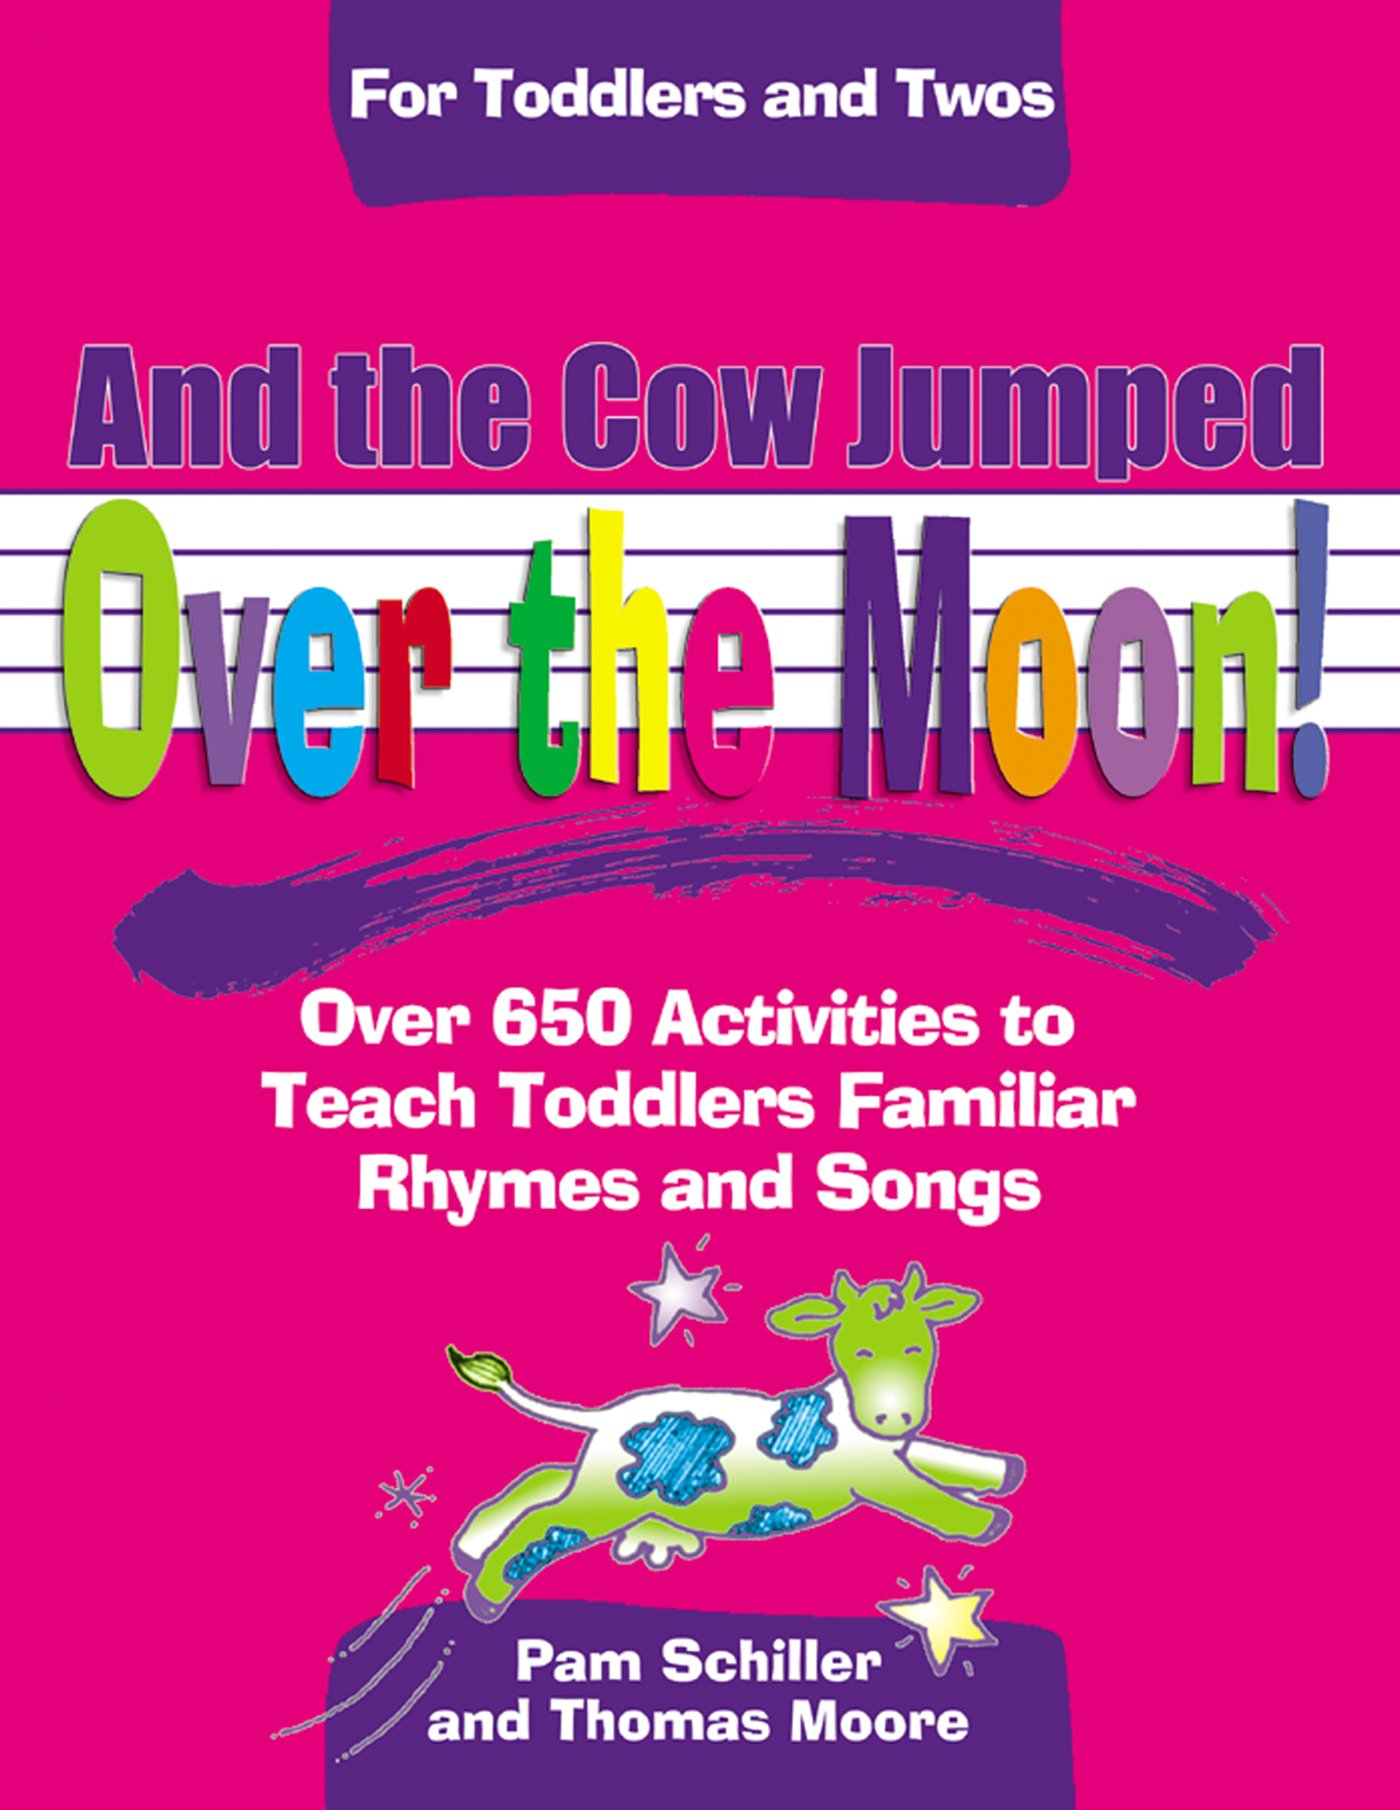 And the Cow Jumped Over the Moon: Over 650 Activities to Teach Toddlers Using Familiar Rhymes and Songs (For Toddlers And Twos) ebook